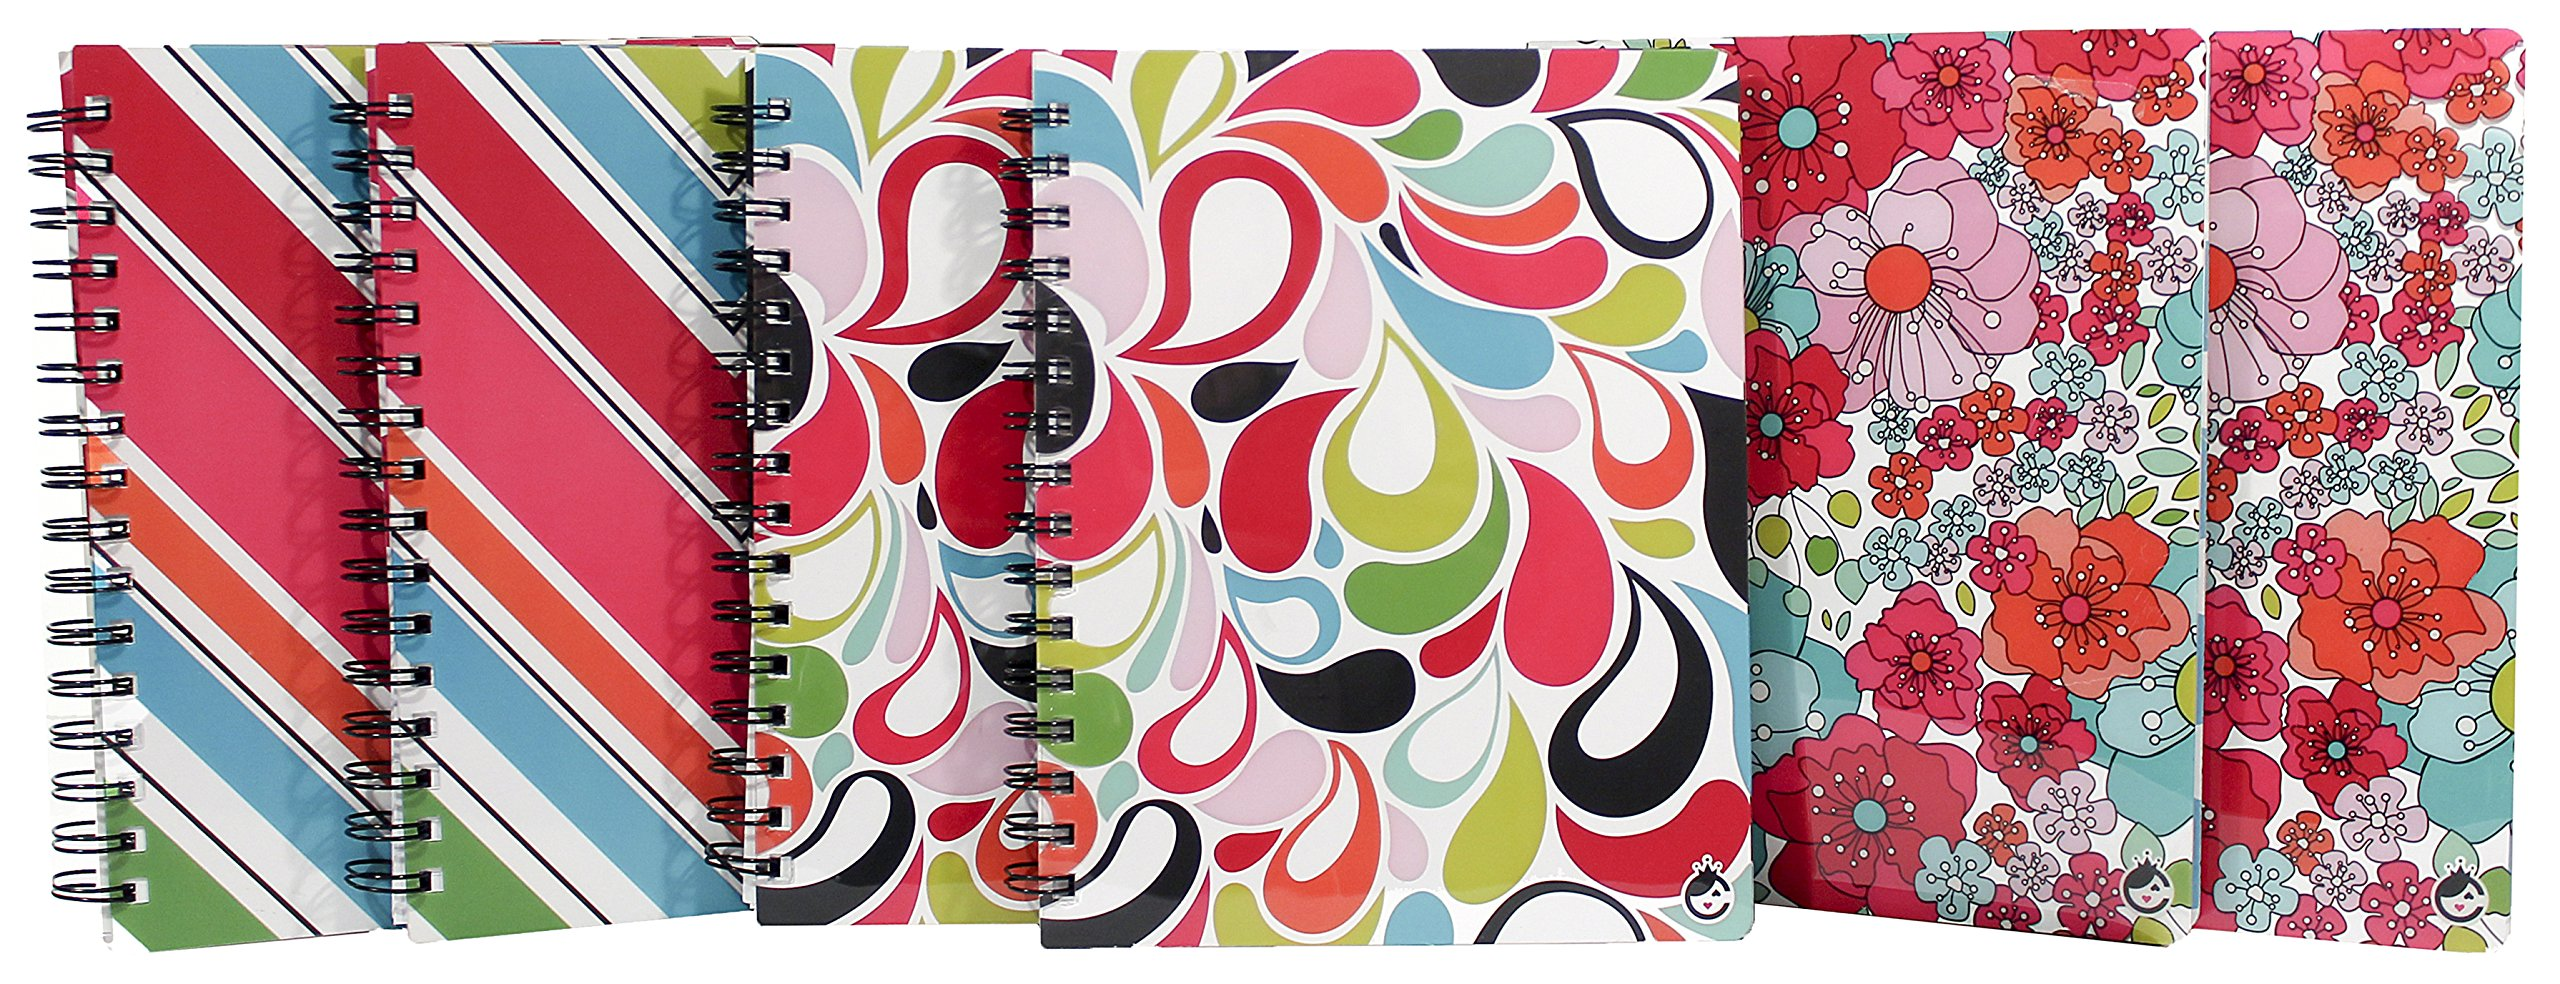 Studio C Sugarland Ideal Notebook, 8.6'' x 6.5'', College Ruled, 120 Sheets, Assortment of 6 Notebooks (25511)